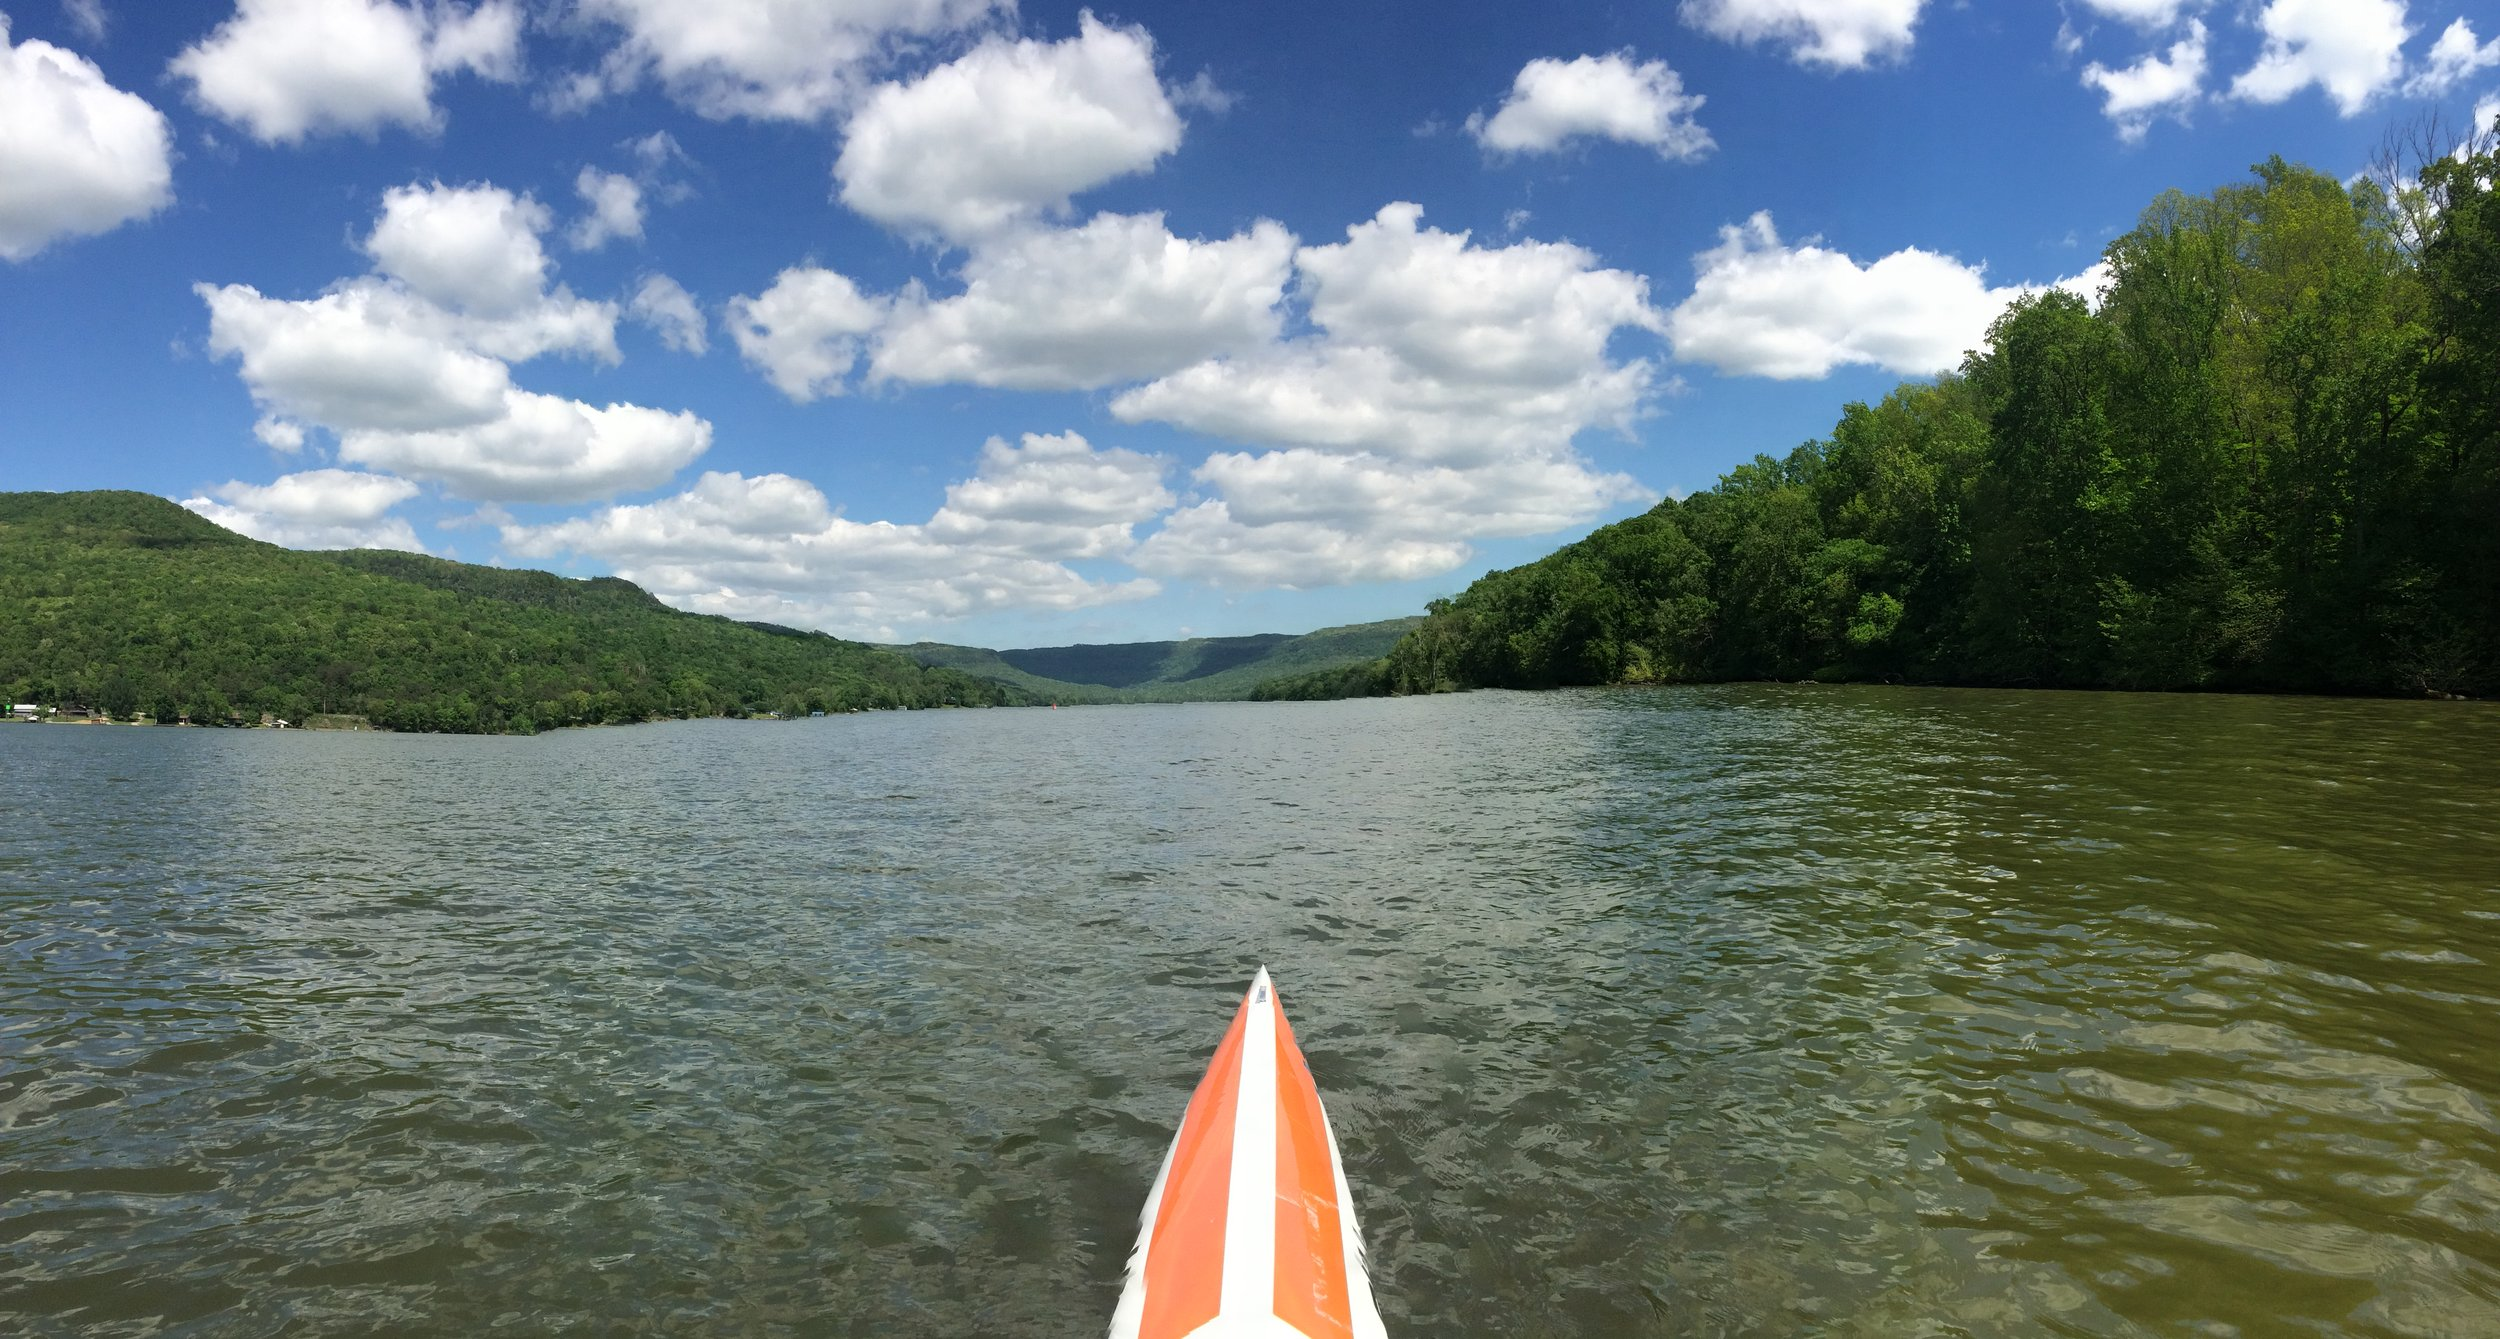 Tennessee River heading towards Mullin's Cove from downriver